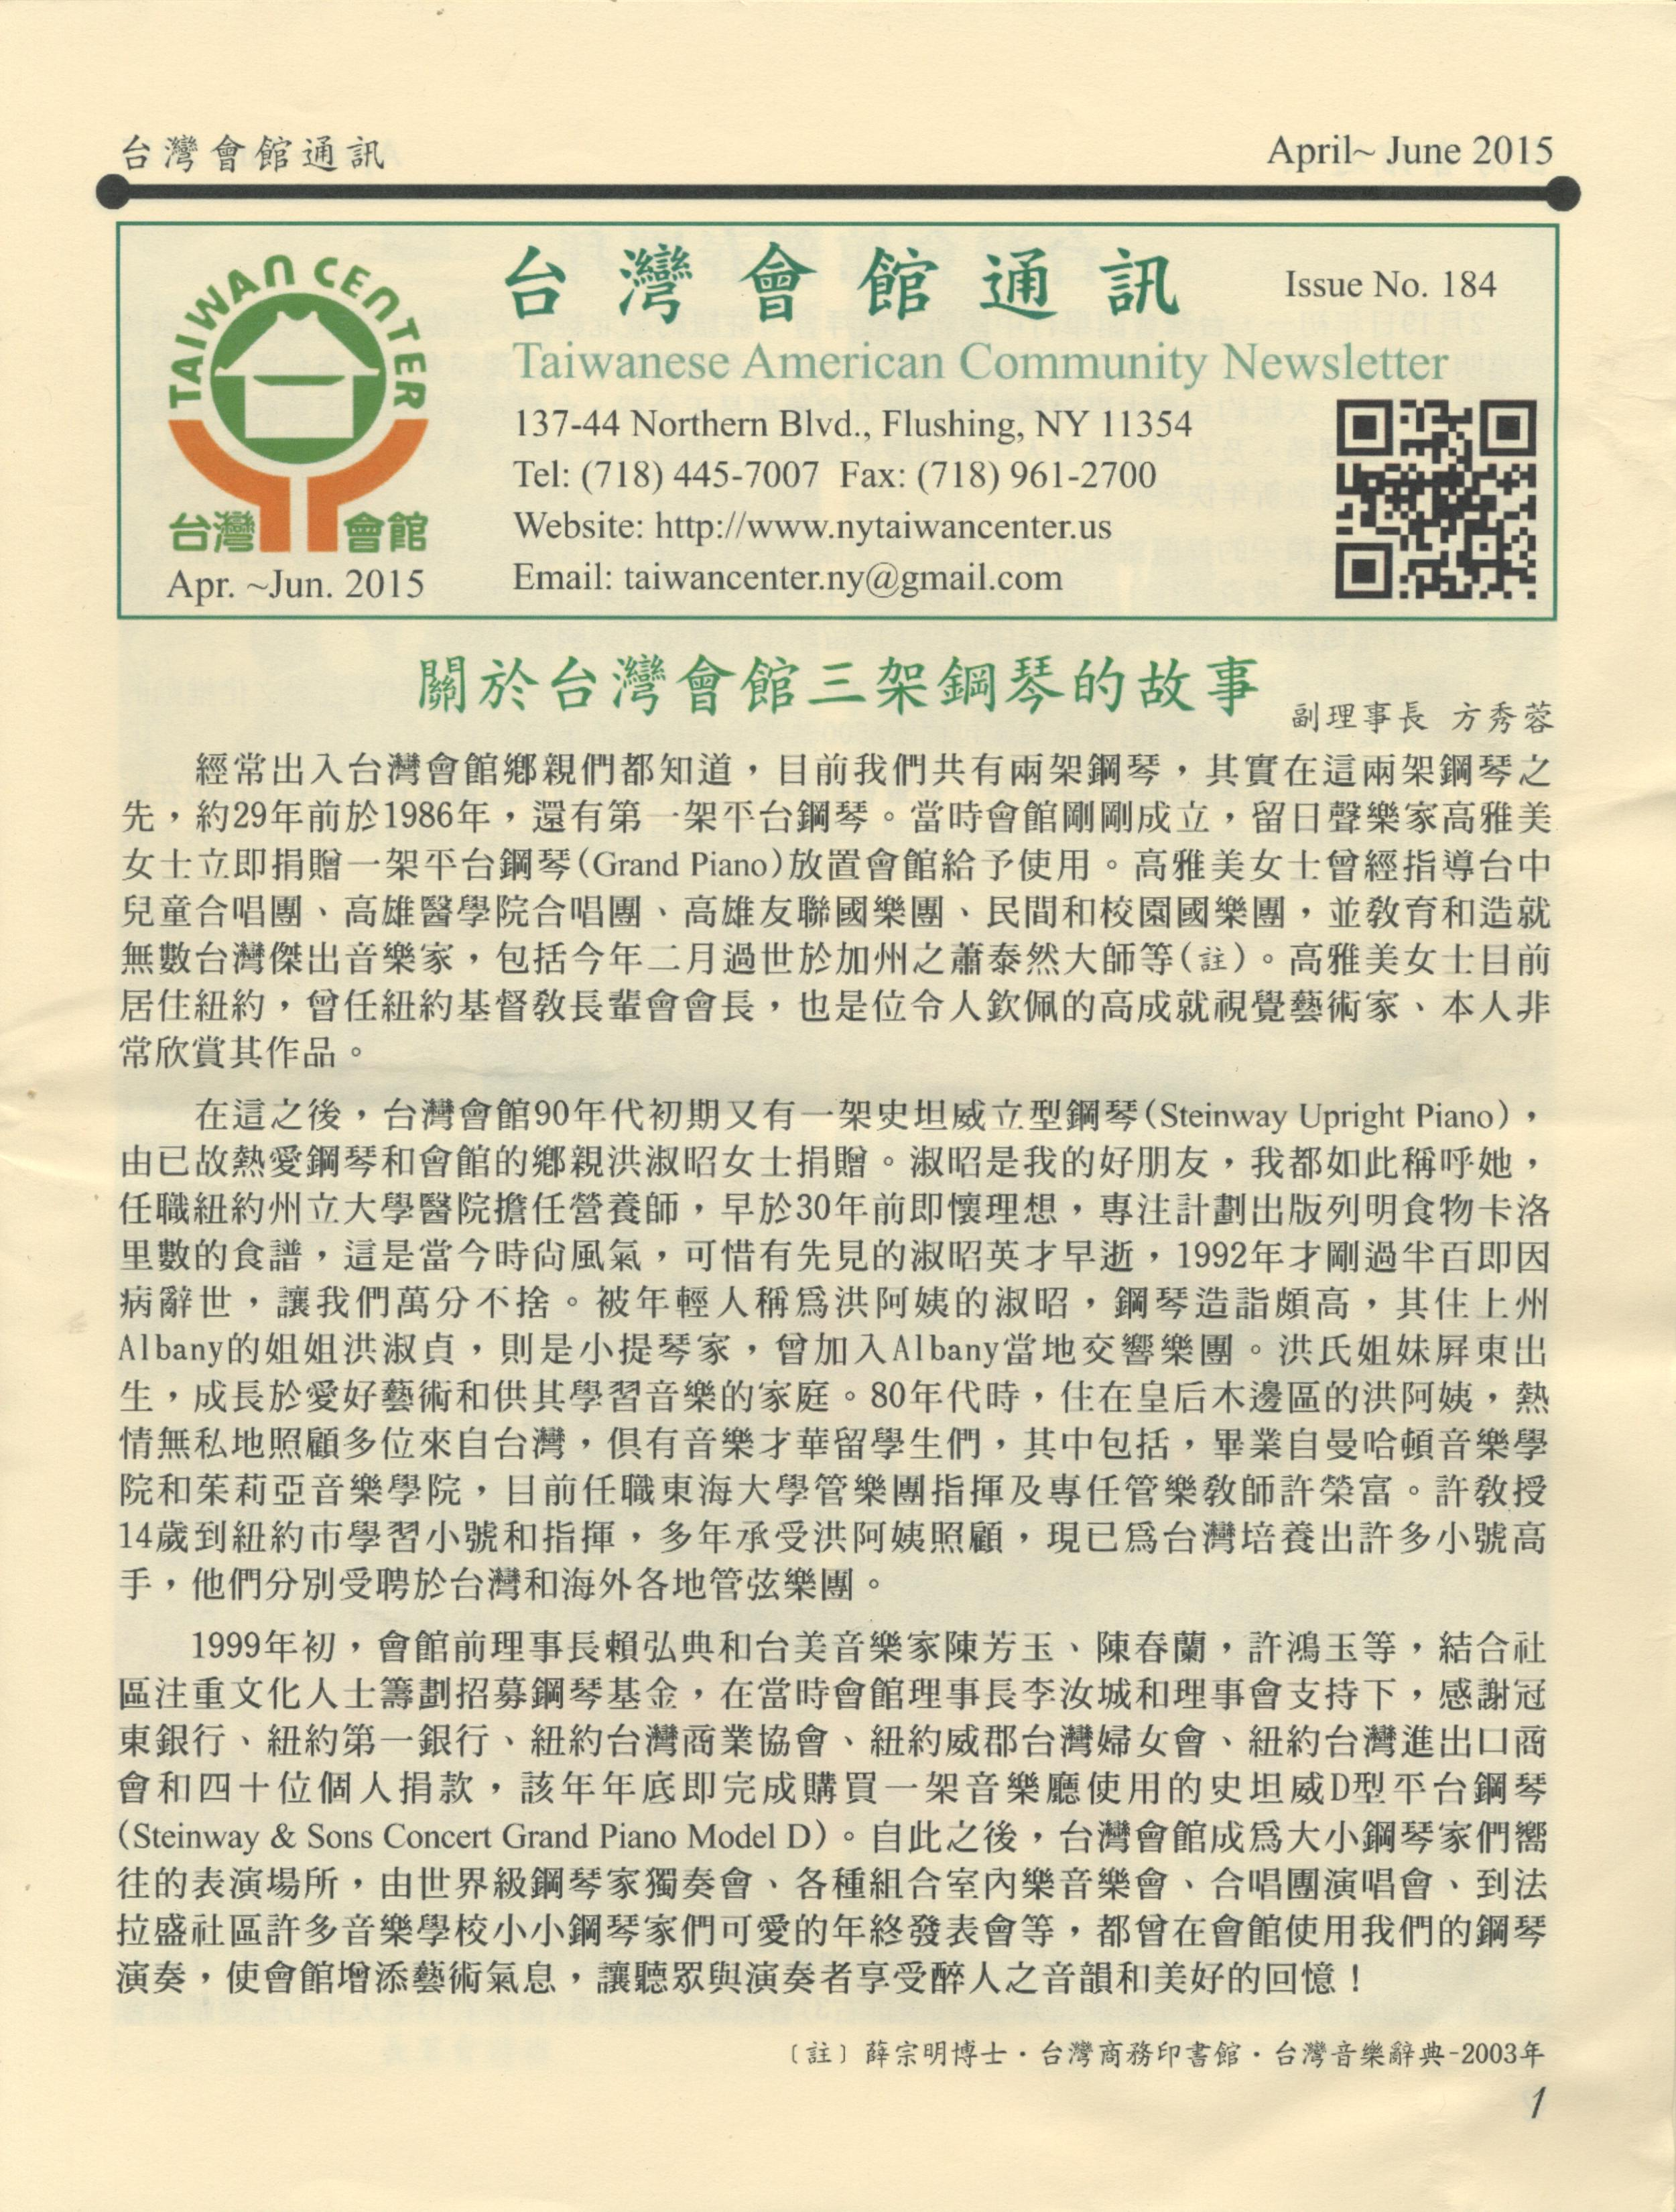 Taiwanese American Community Newsletter by New York Taiwan Center 紐約台灣會館通訊